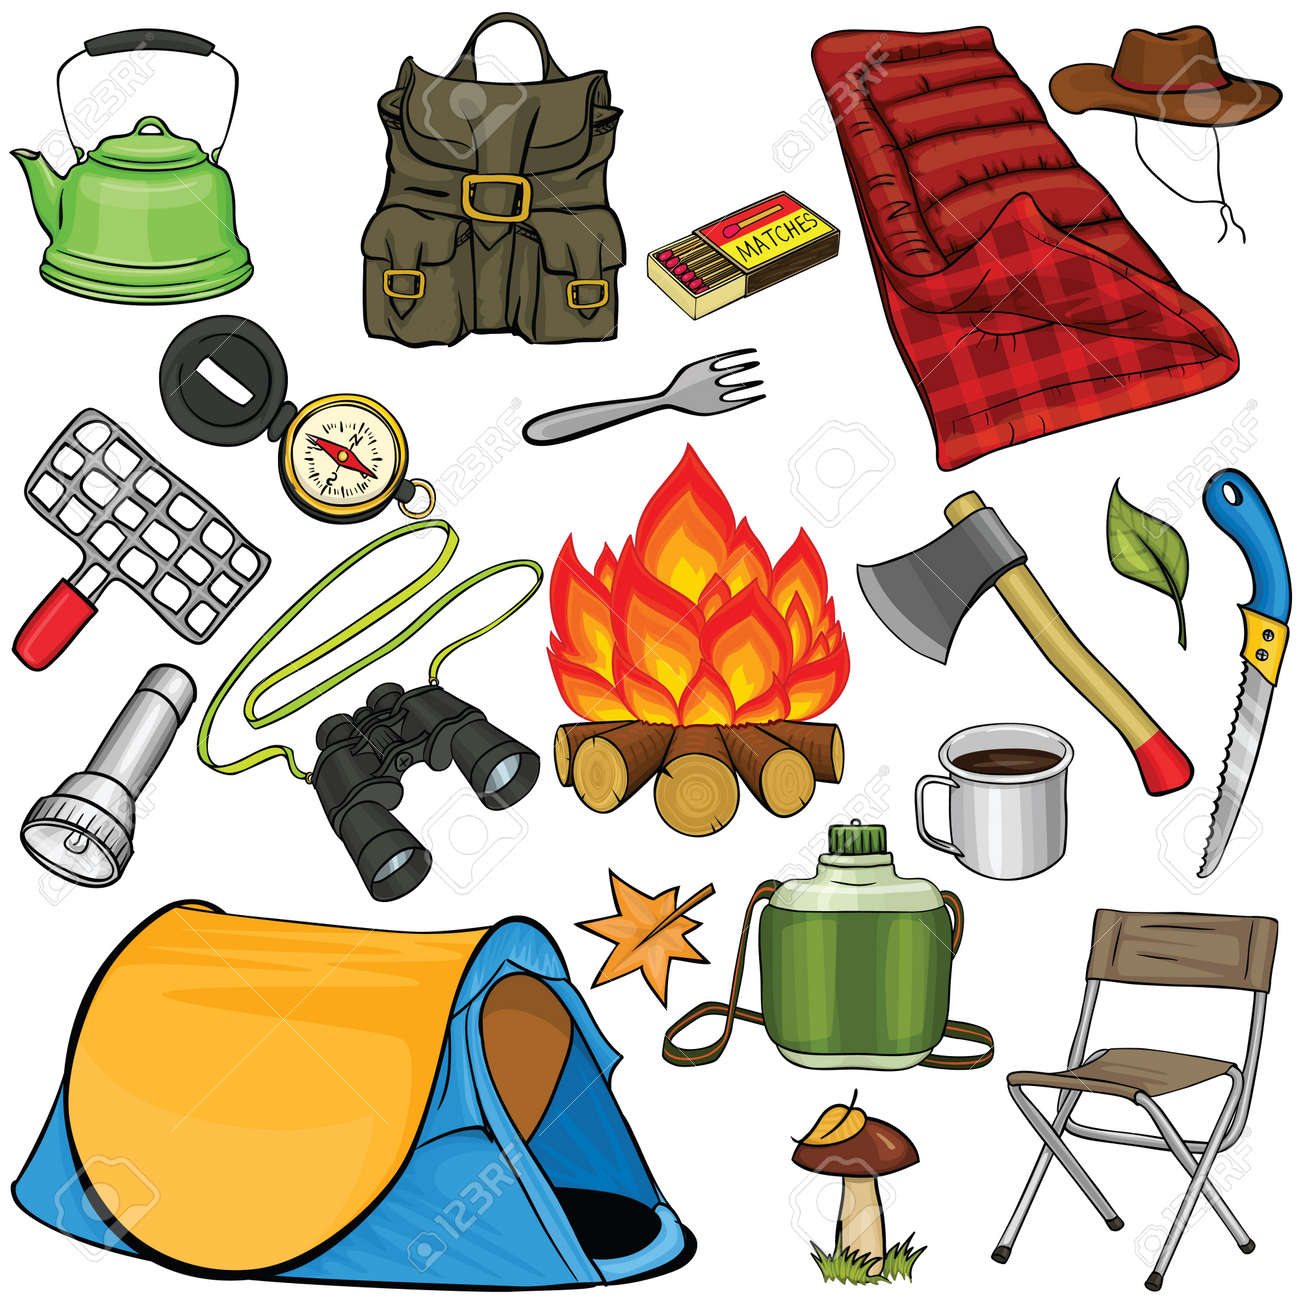 Set Of Camping Gear In Cartoon Style Stock Vector